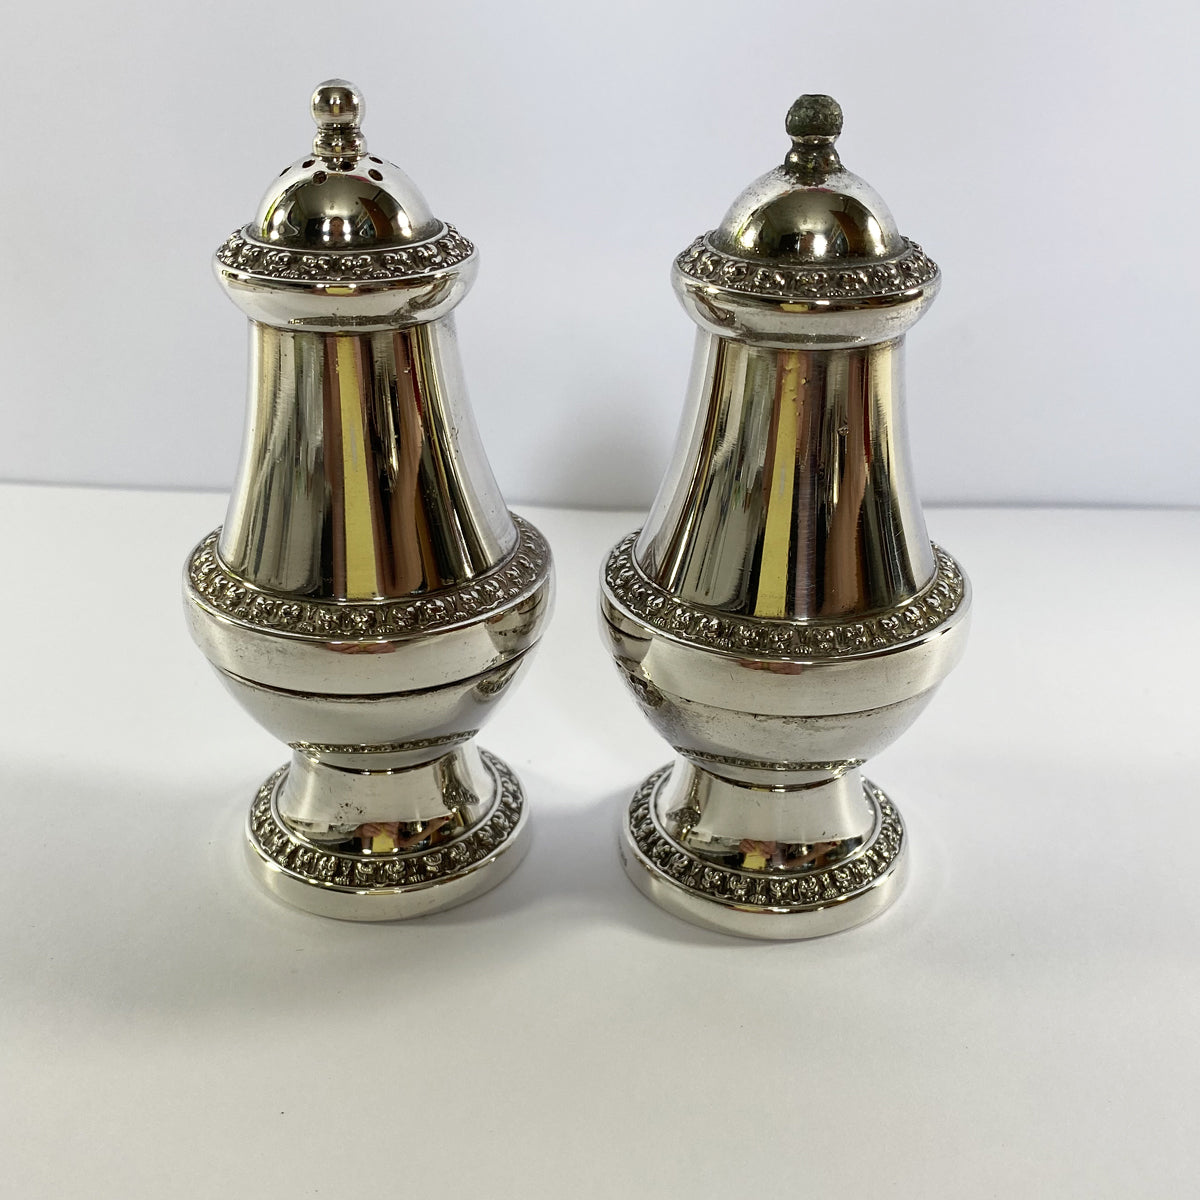 Ianthe Silver Plate Salt and Pepper Cruet Set Shakers